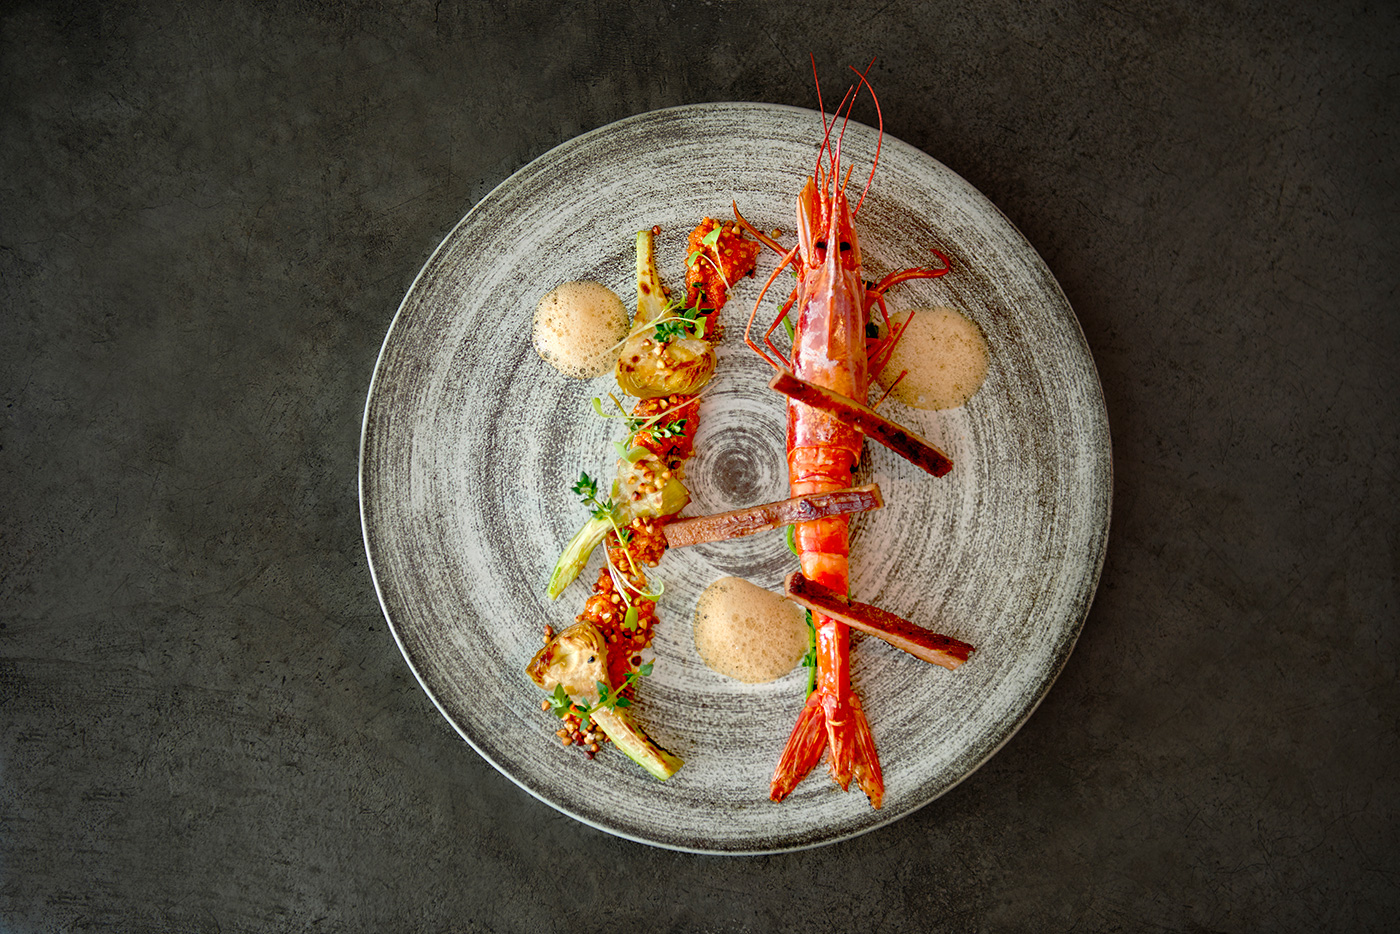 Bar-A-Thym-French-Restaurent-Singapore-Best-Carabinero-Prawn-Iberico-Pork -Jowl.jpg